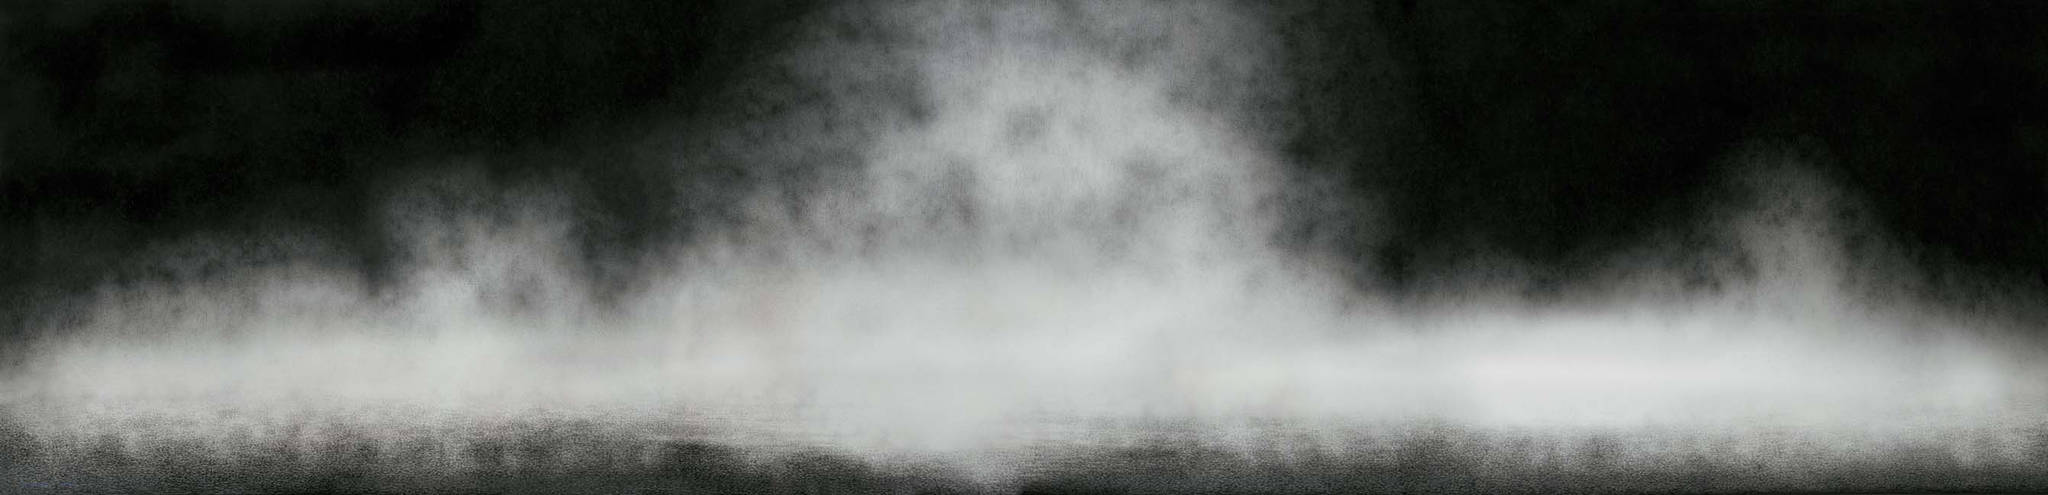 Moonscape 달빛(2016), 194x777cm, Charcoal on Canvas